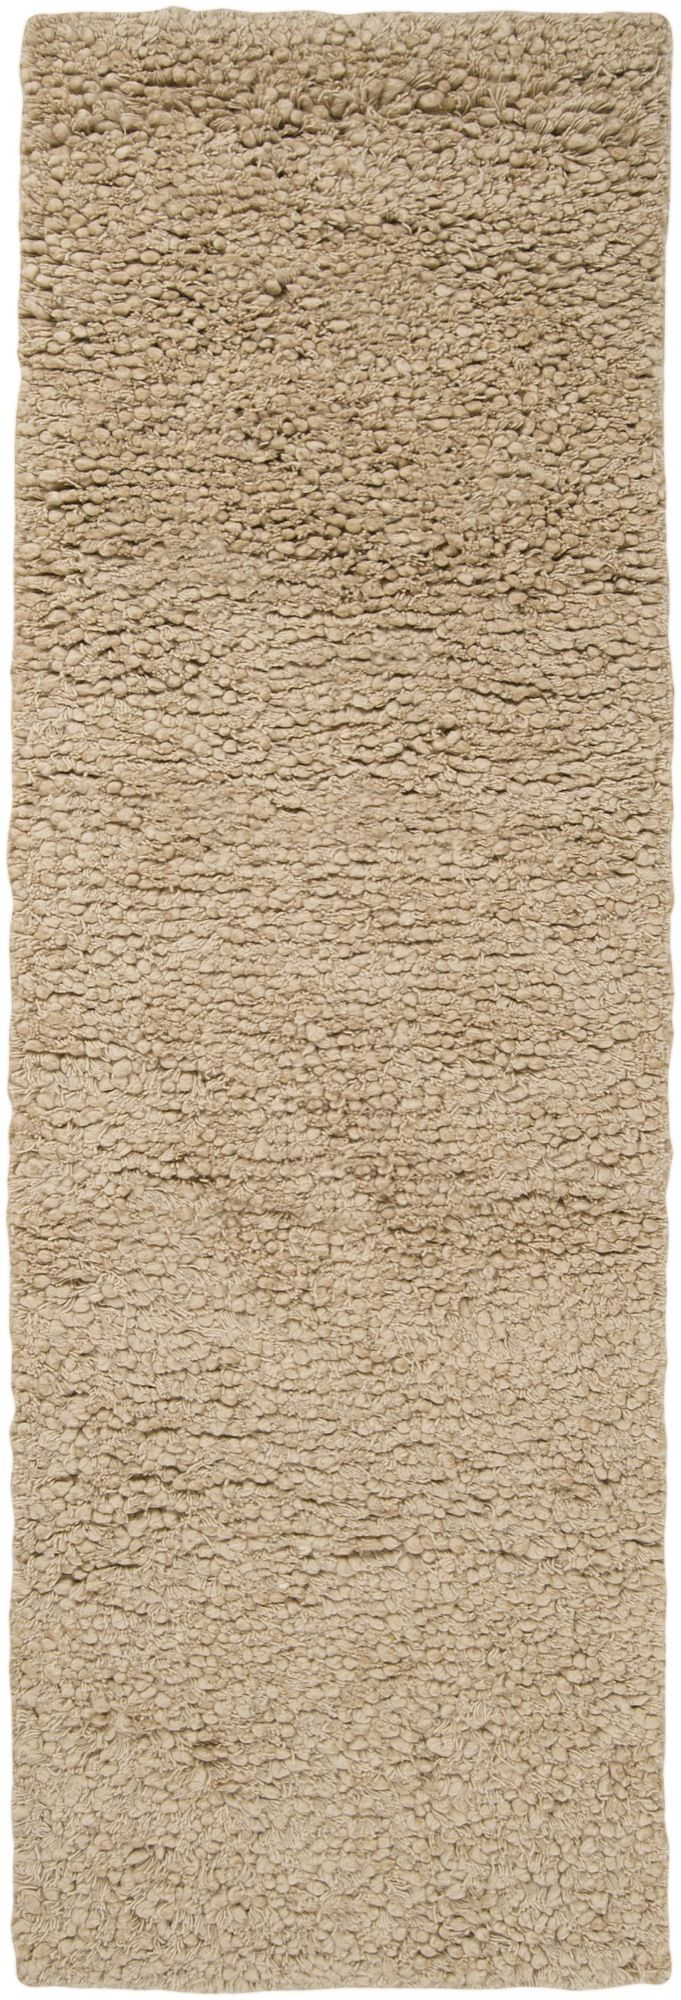 surya metropolitan shag area rug collection